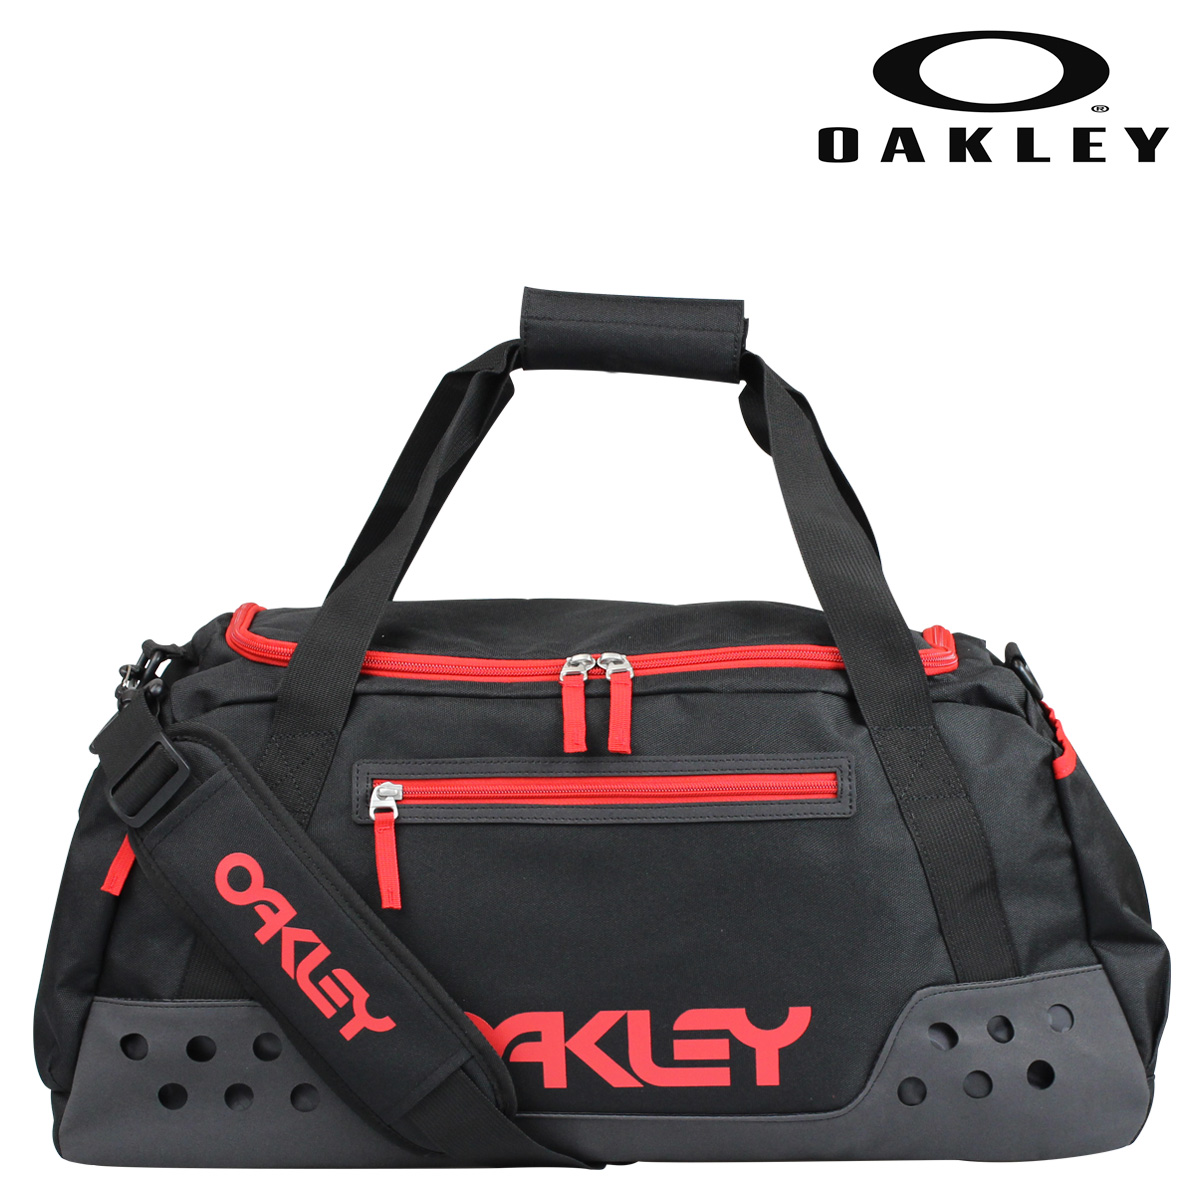 Sugar Online Oakley Men S Boston Bag Duffel 92592 Factory Pilot Duffle 9 New In Stock Rakuten Global Market